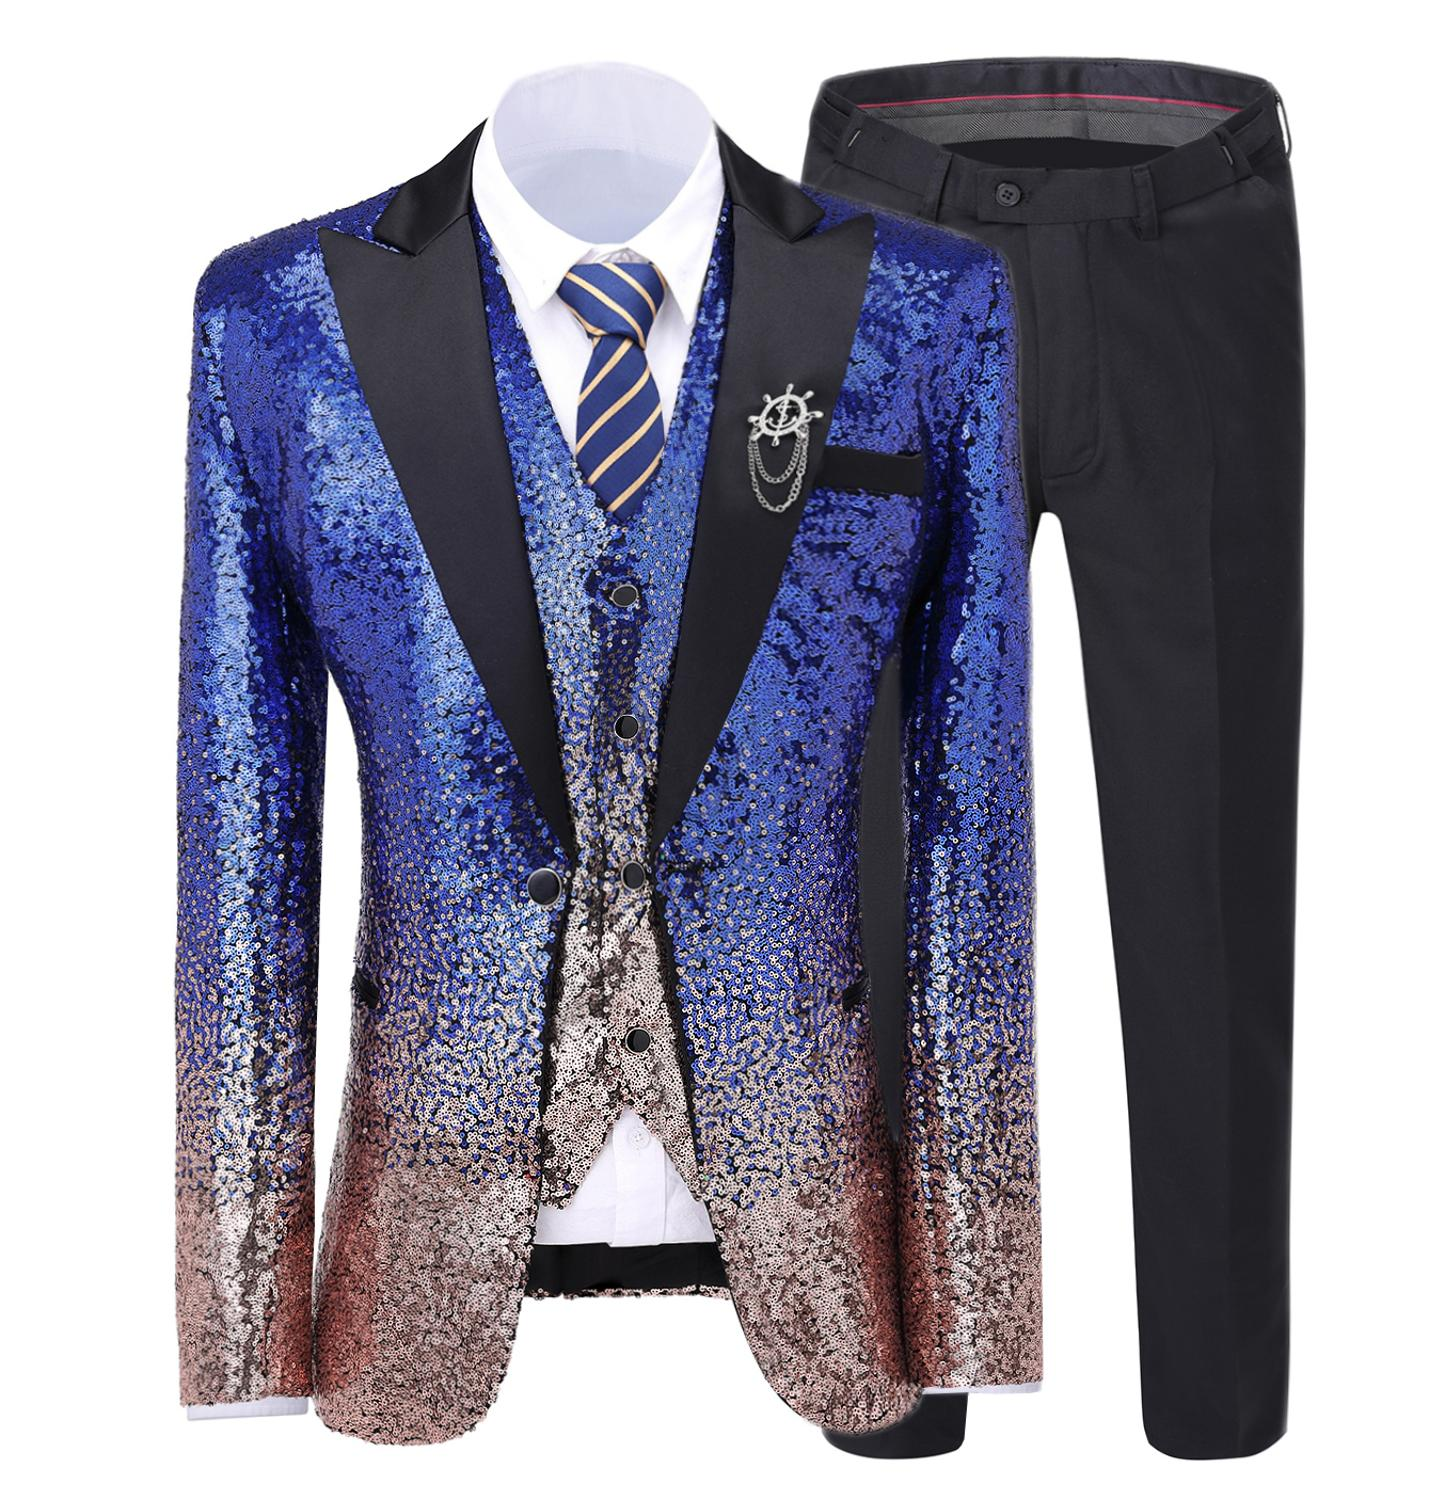 Royal Blue Men's Suit Gradually Changing Color Sequin Blazer Peak Notch Lapel Tuxedo For Wedding Party Groom (Blazer+Vest+pants)